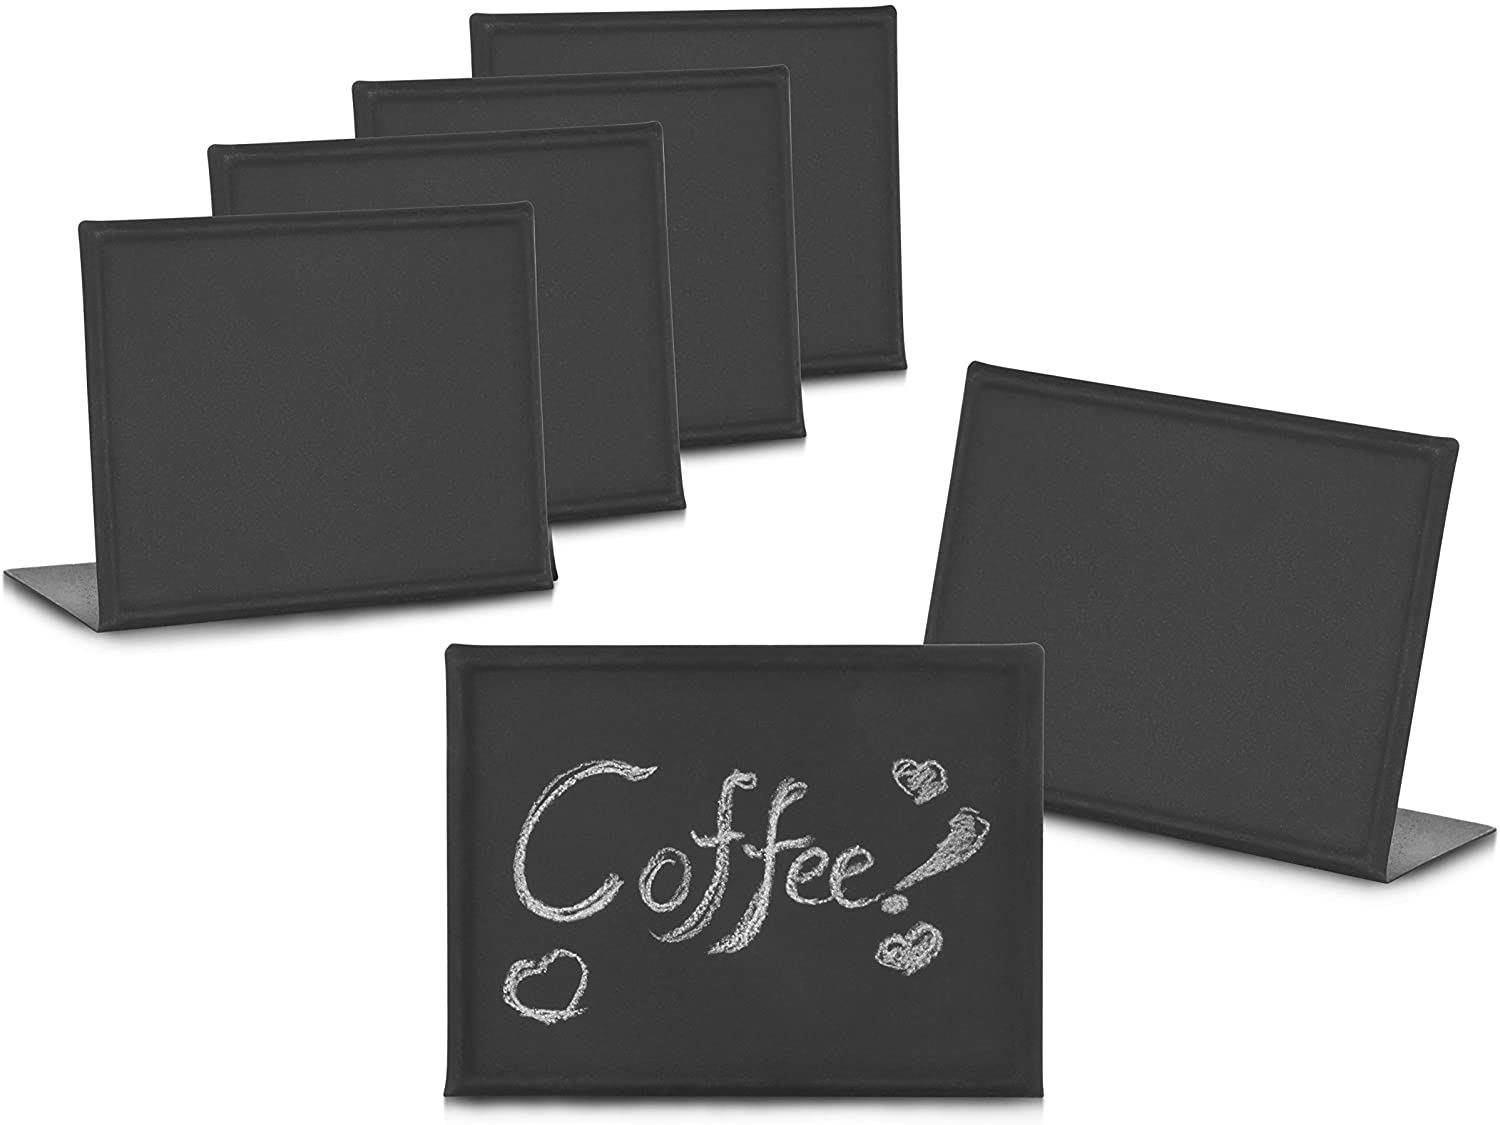 New Star Foodservice 28669 Metal Mini Chalkboards, 3 by 4-Inch, Set of 6